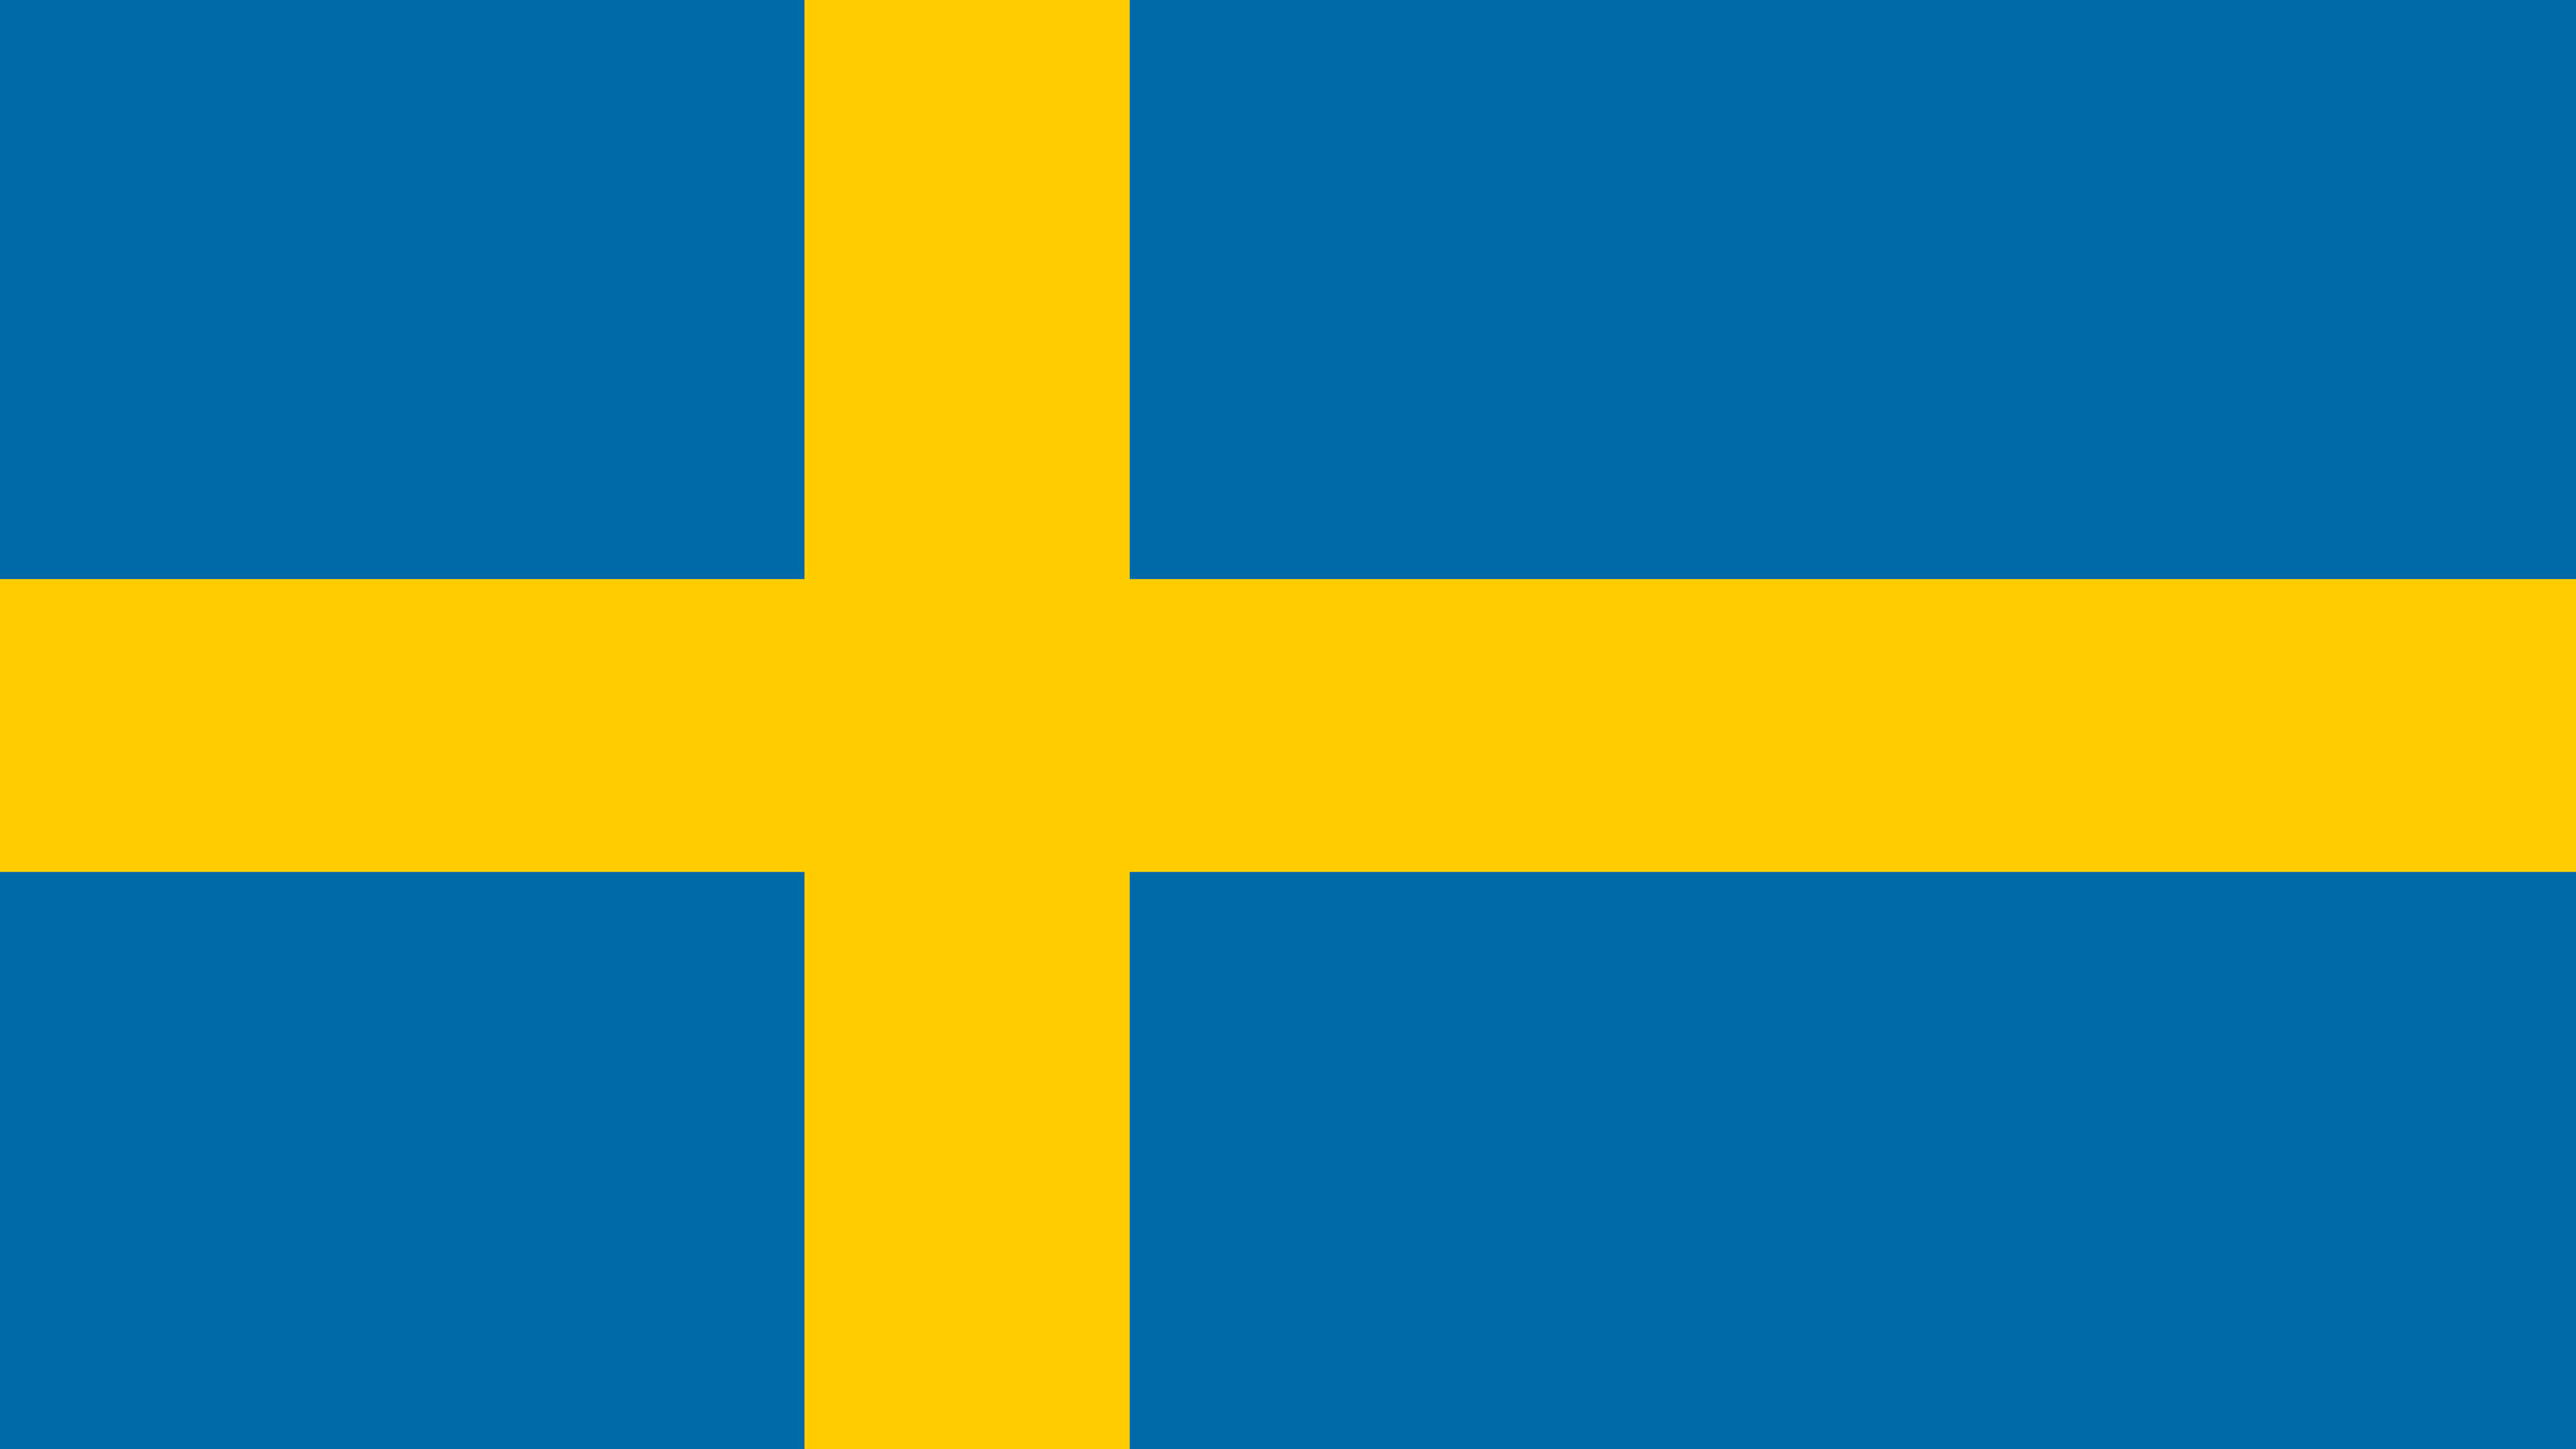 sweden flag uhd 4k wallpaper